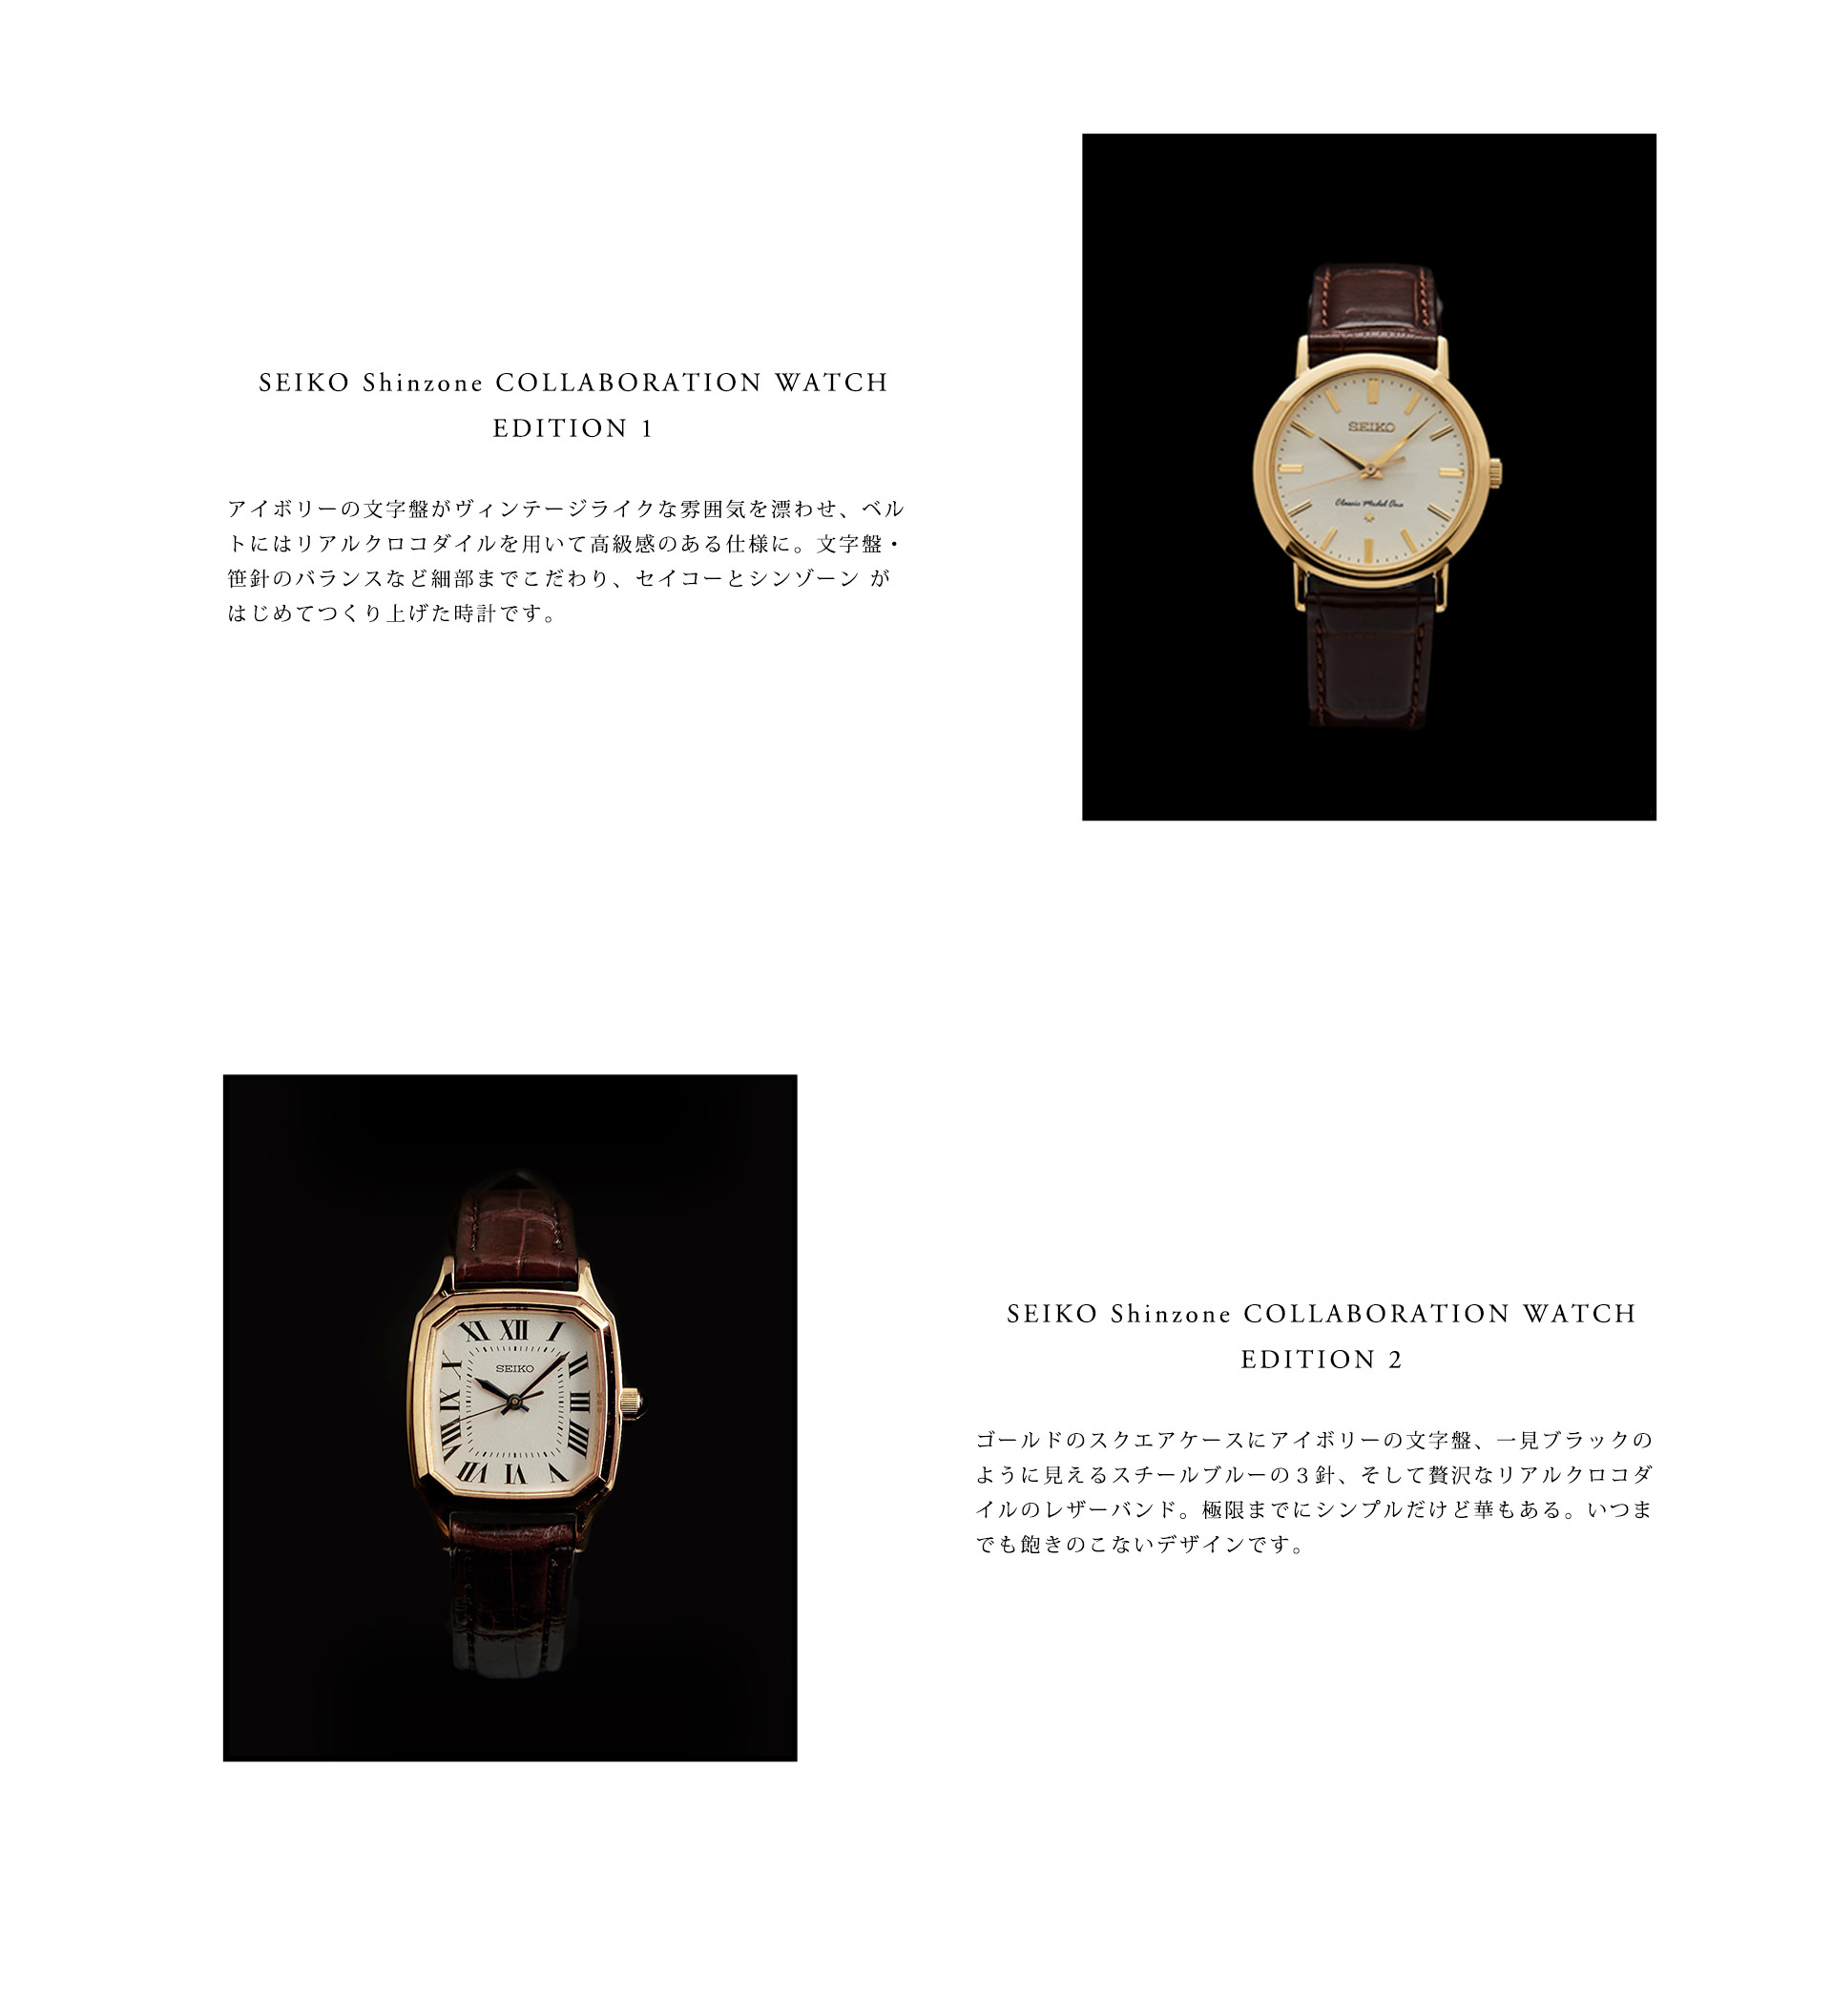 NEWS_SEIKO_Shinzone_COLLABORATION_WATCH_3